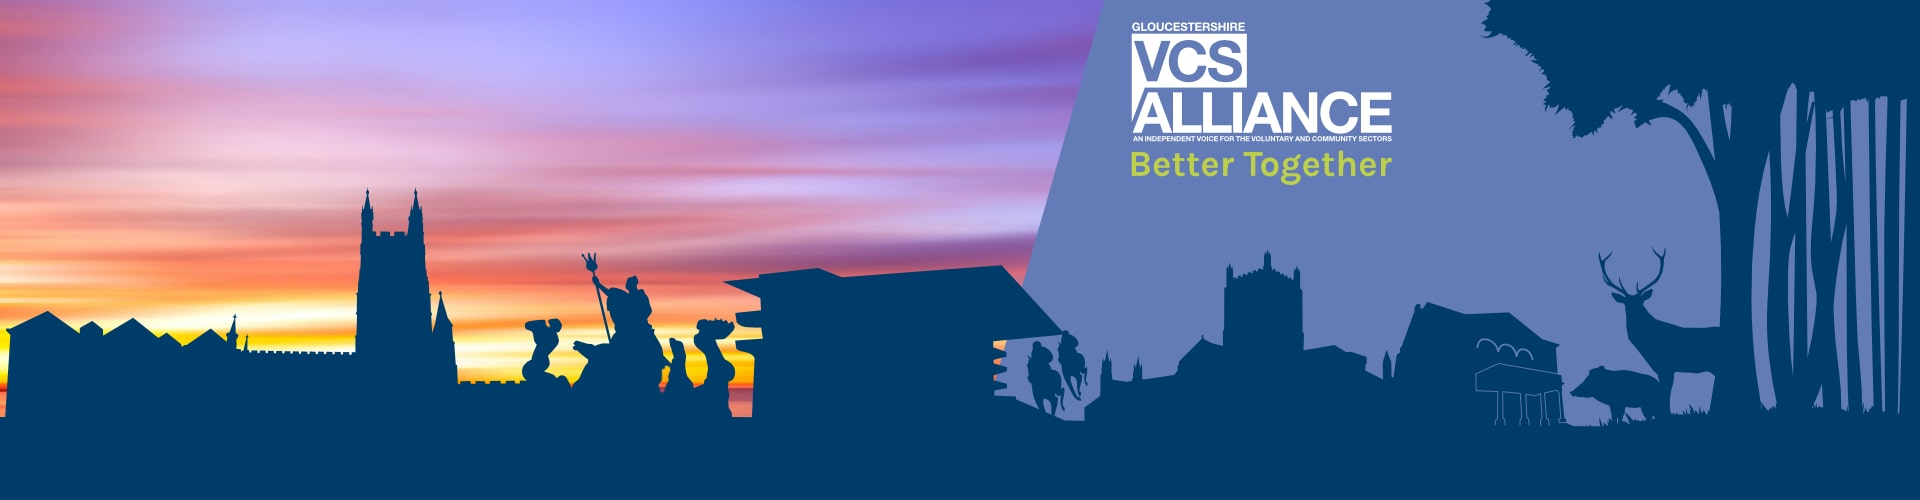 Welcome to the Gloucestershire VCS Alliance